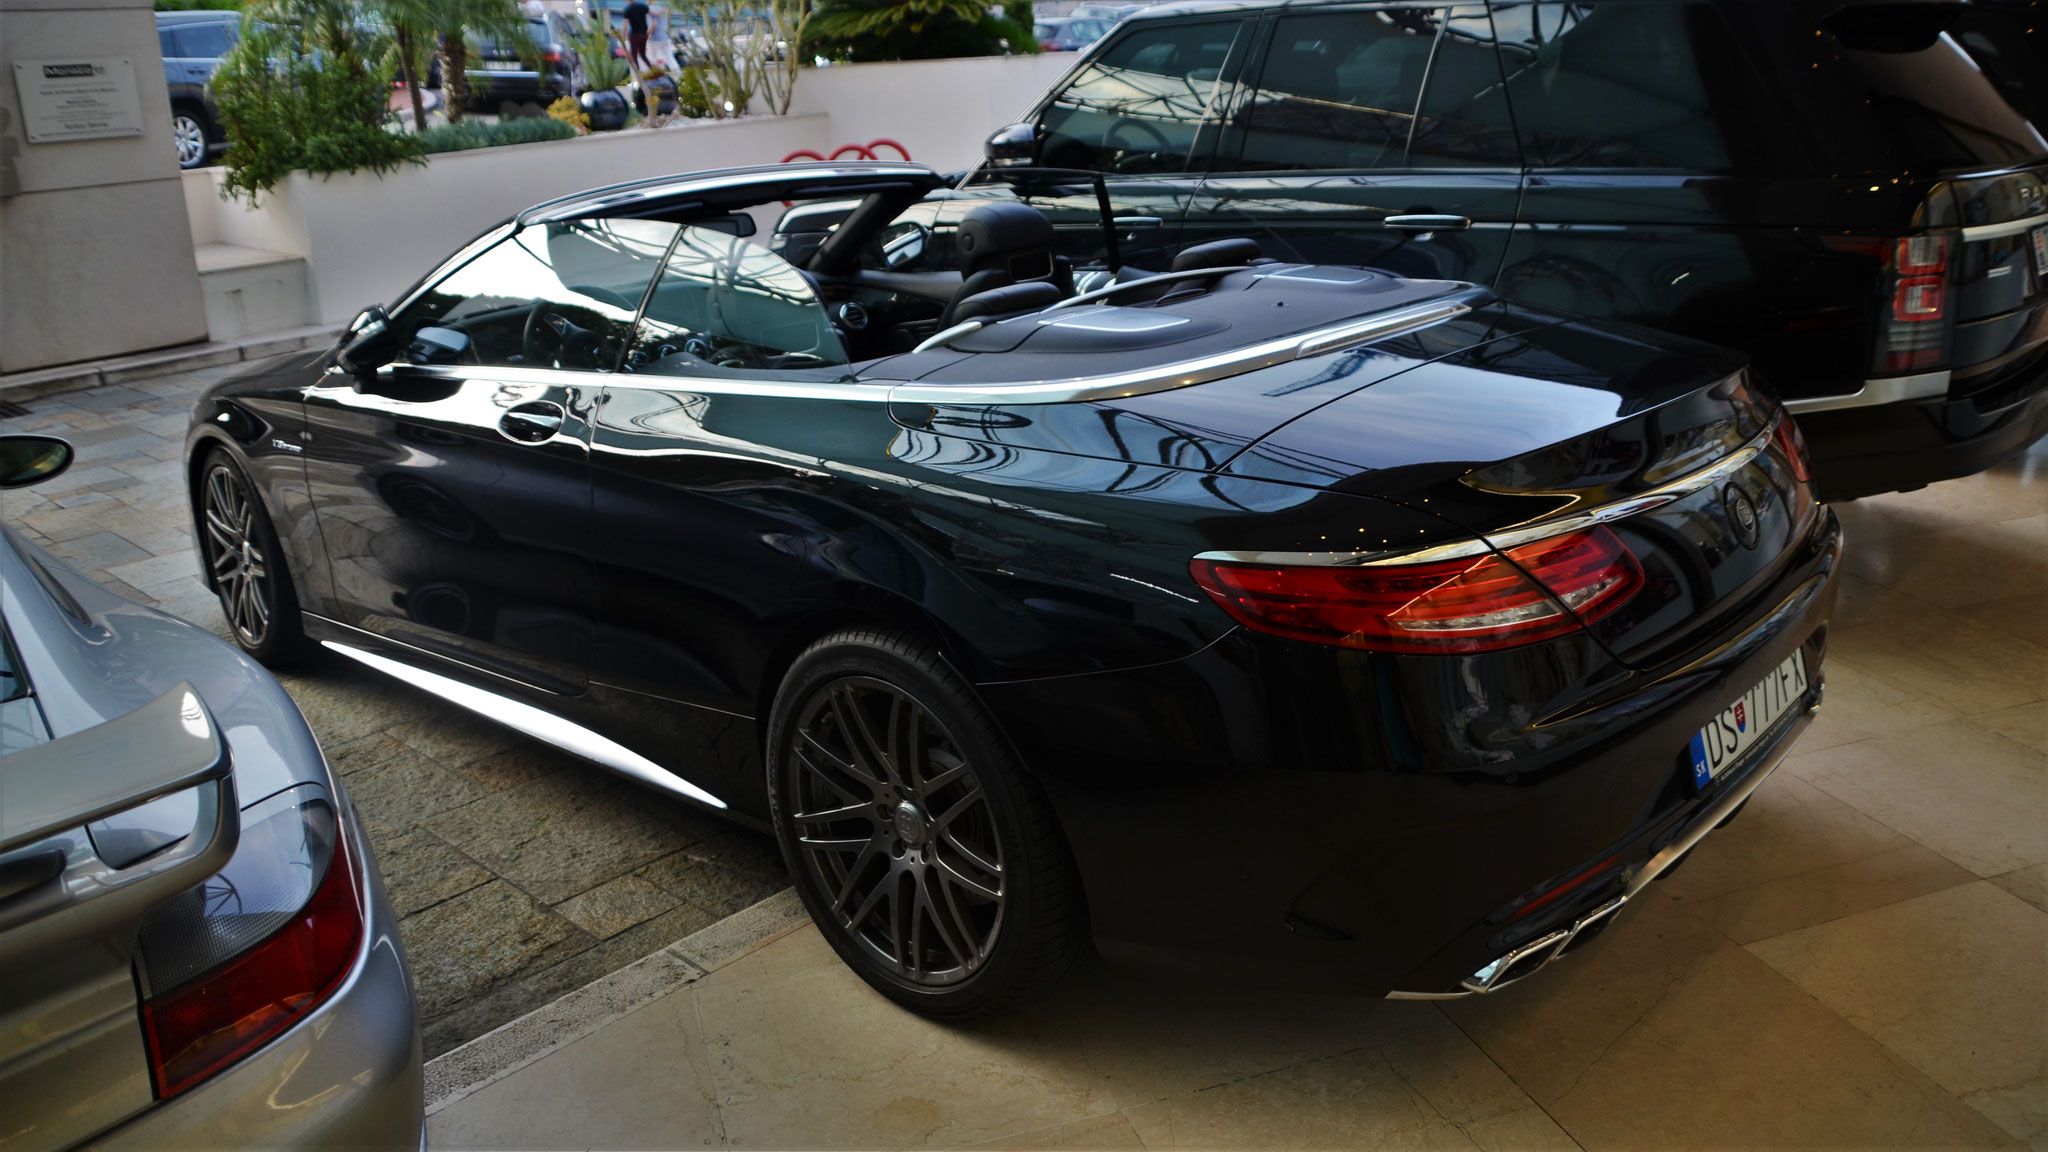 Brabus S63 Cabriolet - DS-777FX (SK)